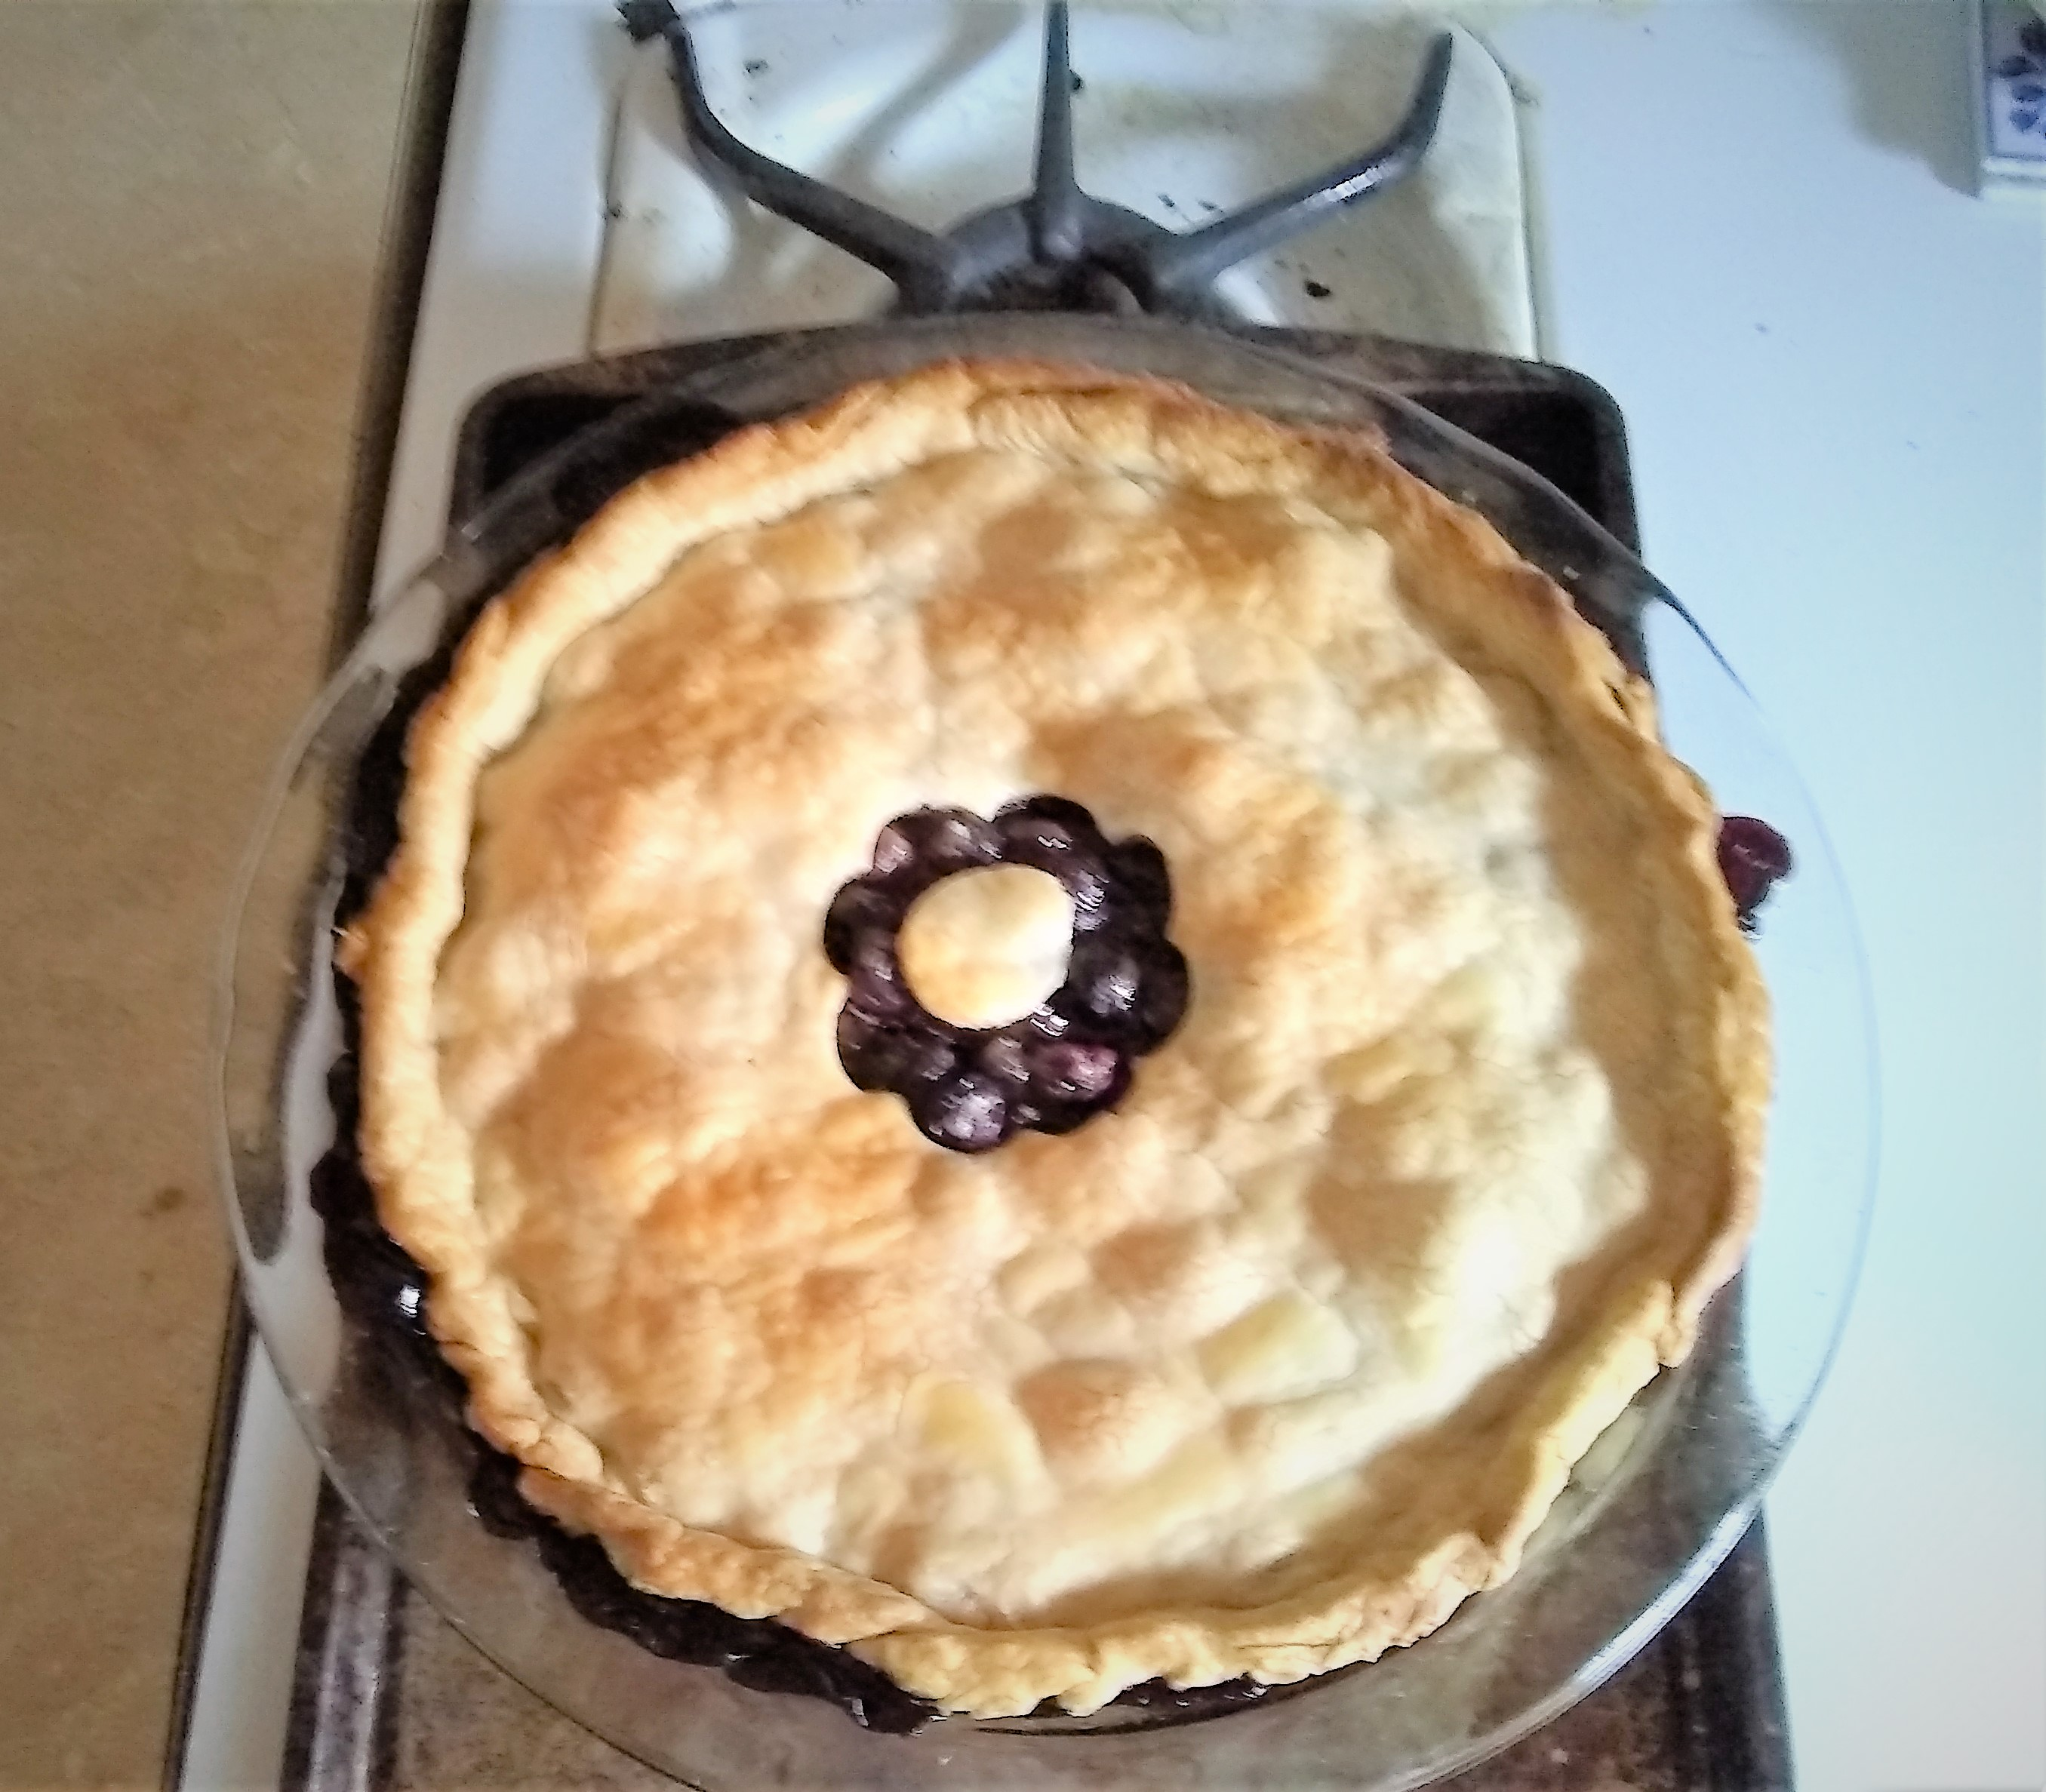 blueberry pie just out of the oven